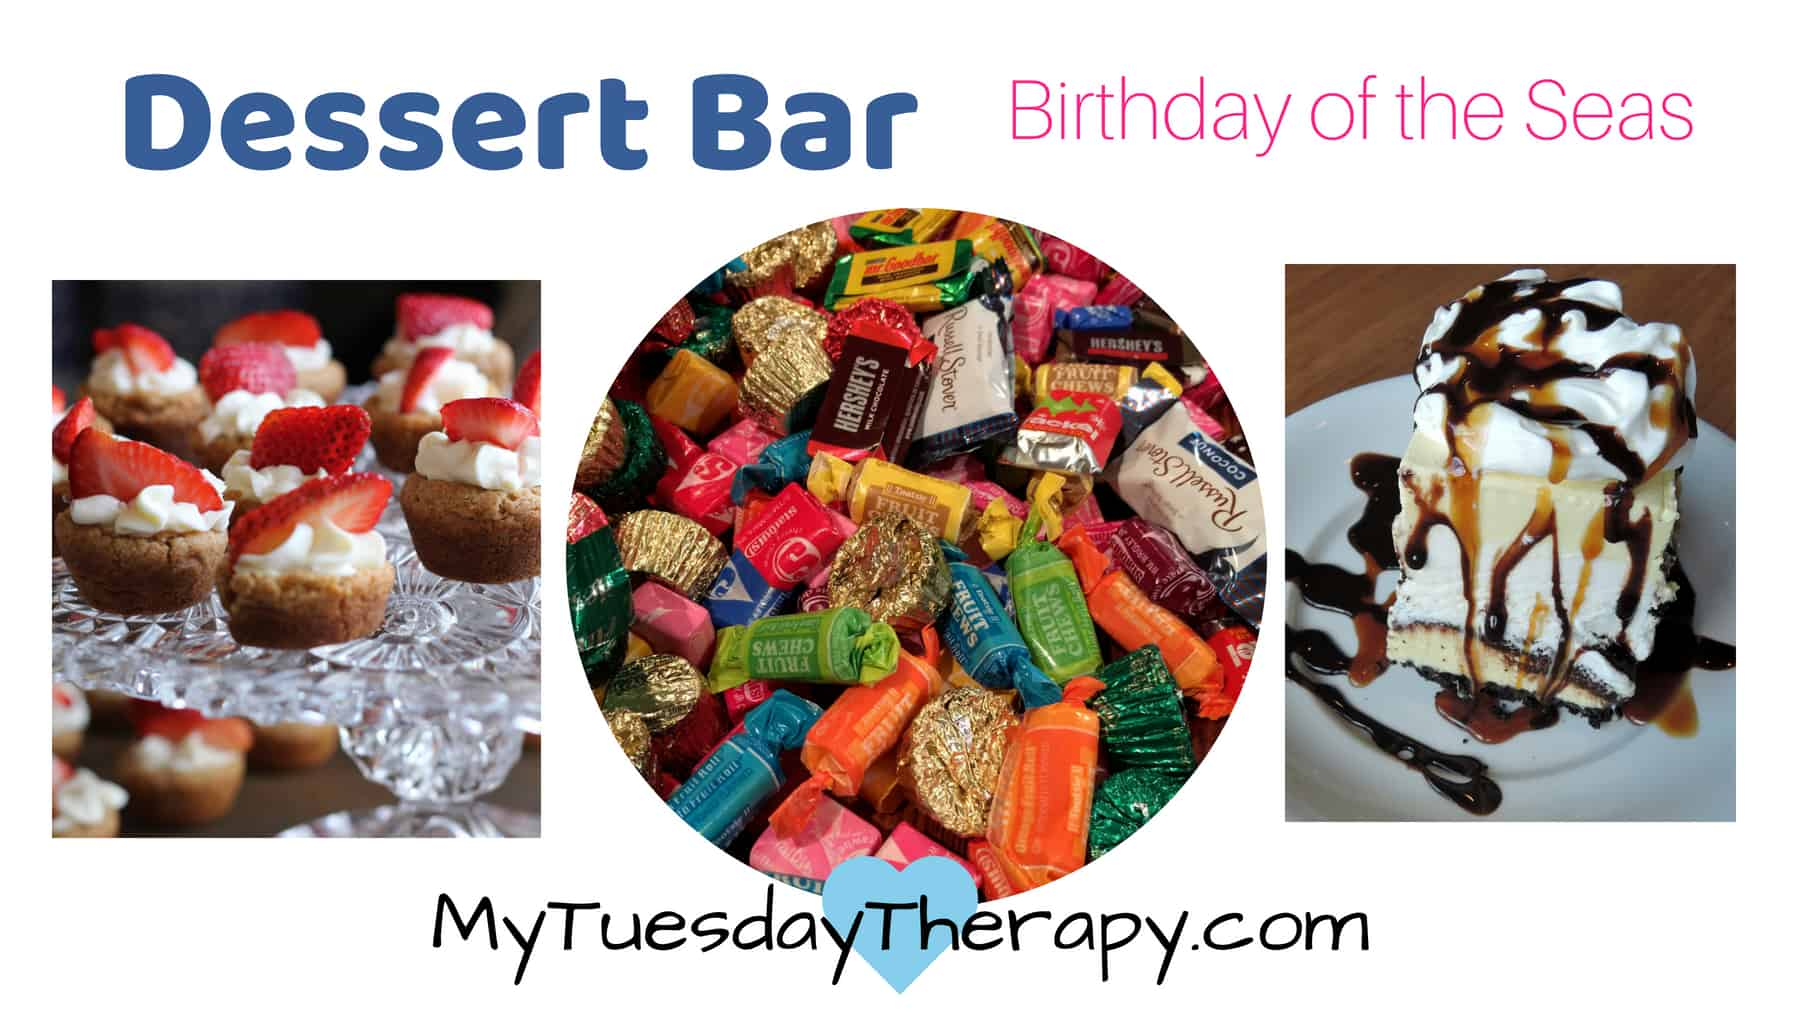 Ideas for 13th birthday party. Dessert Bar at the Birthday of the Seas Party.